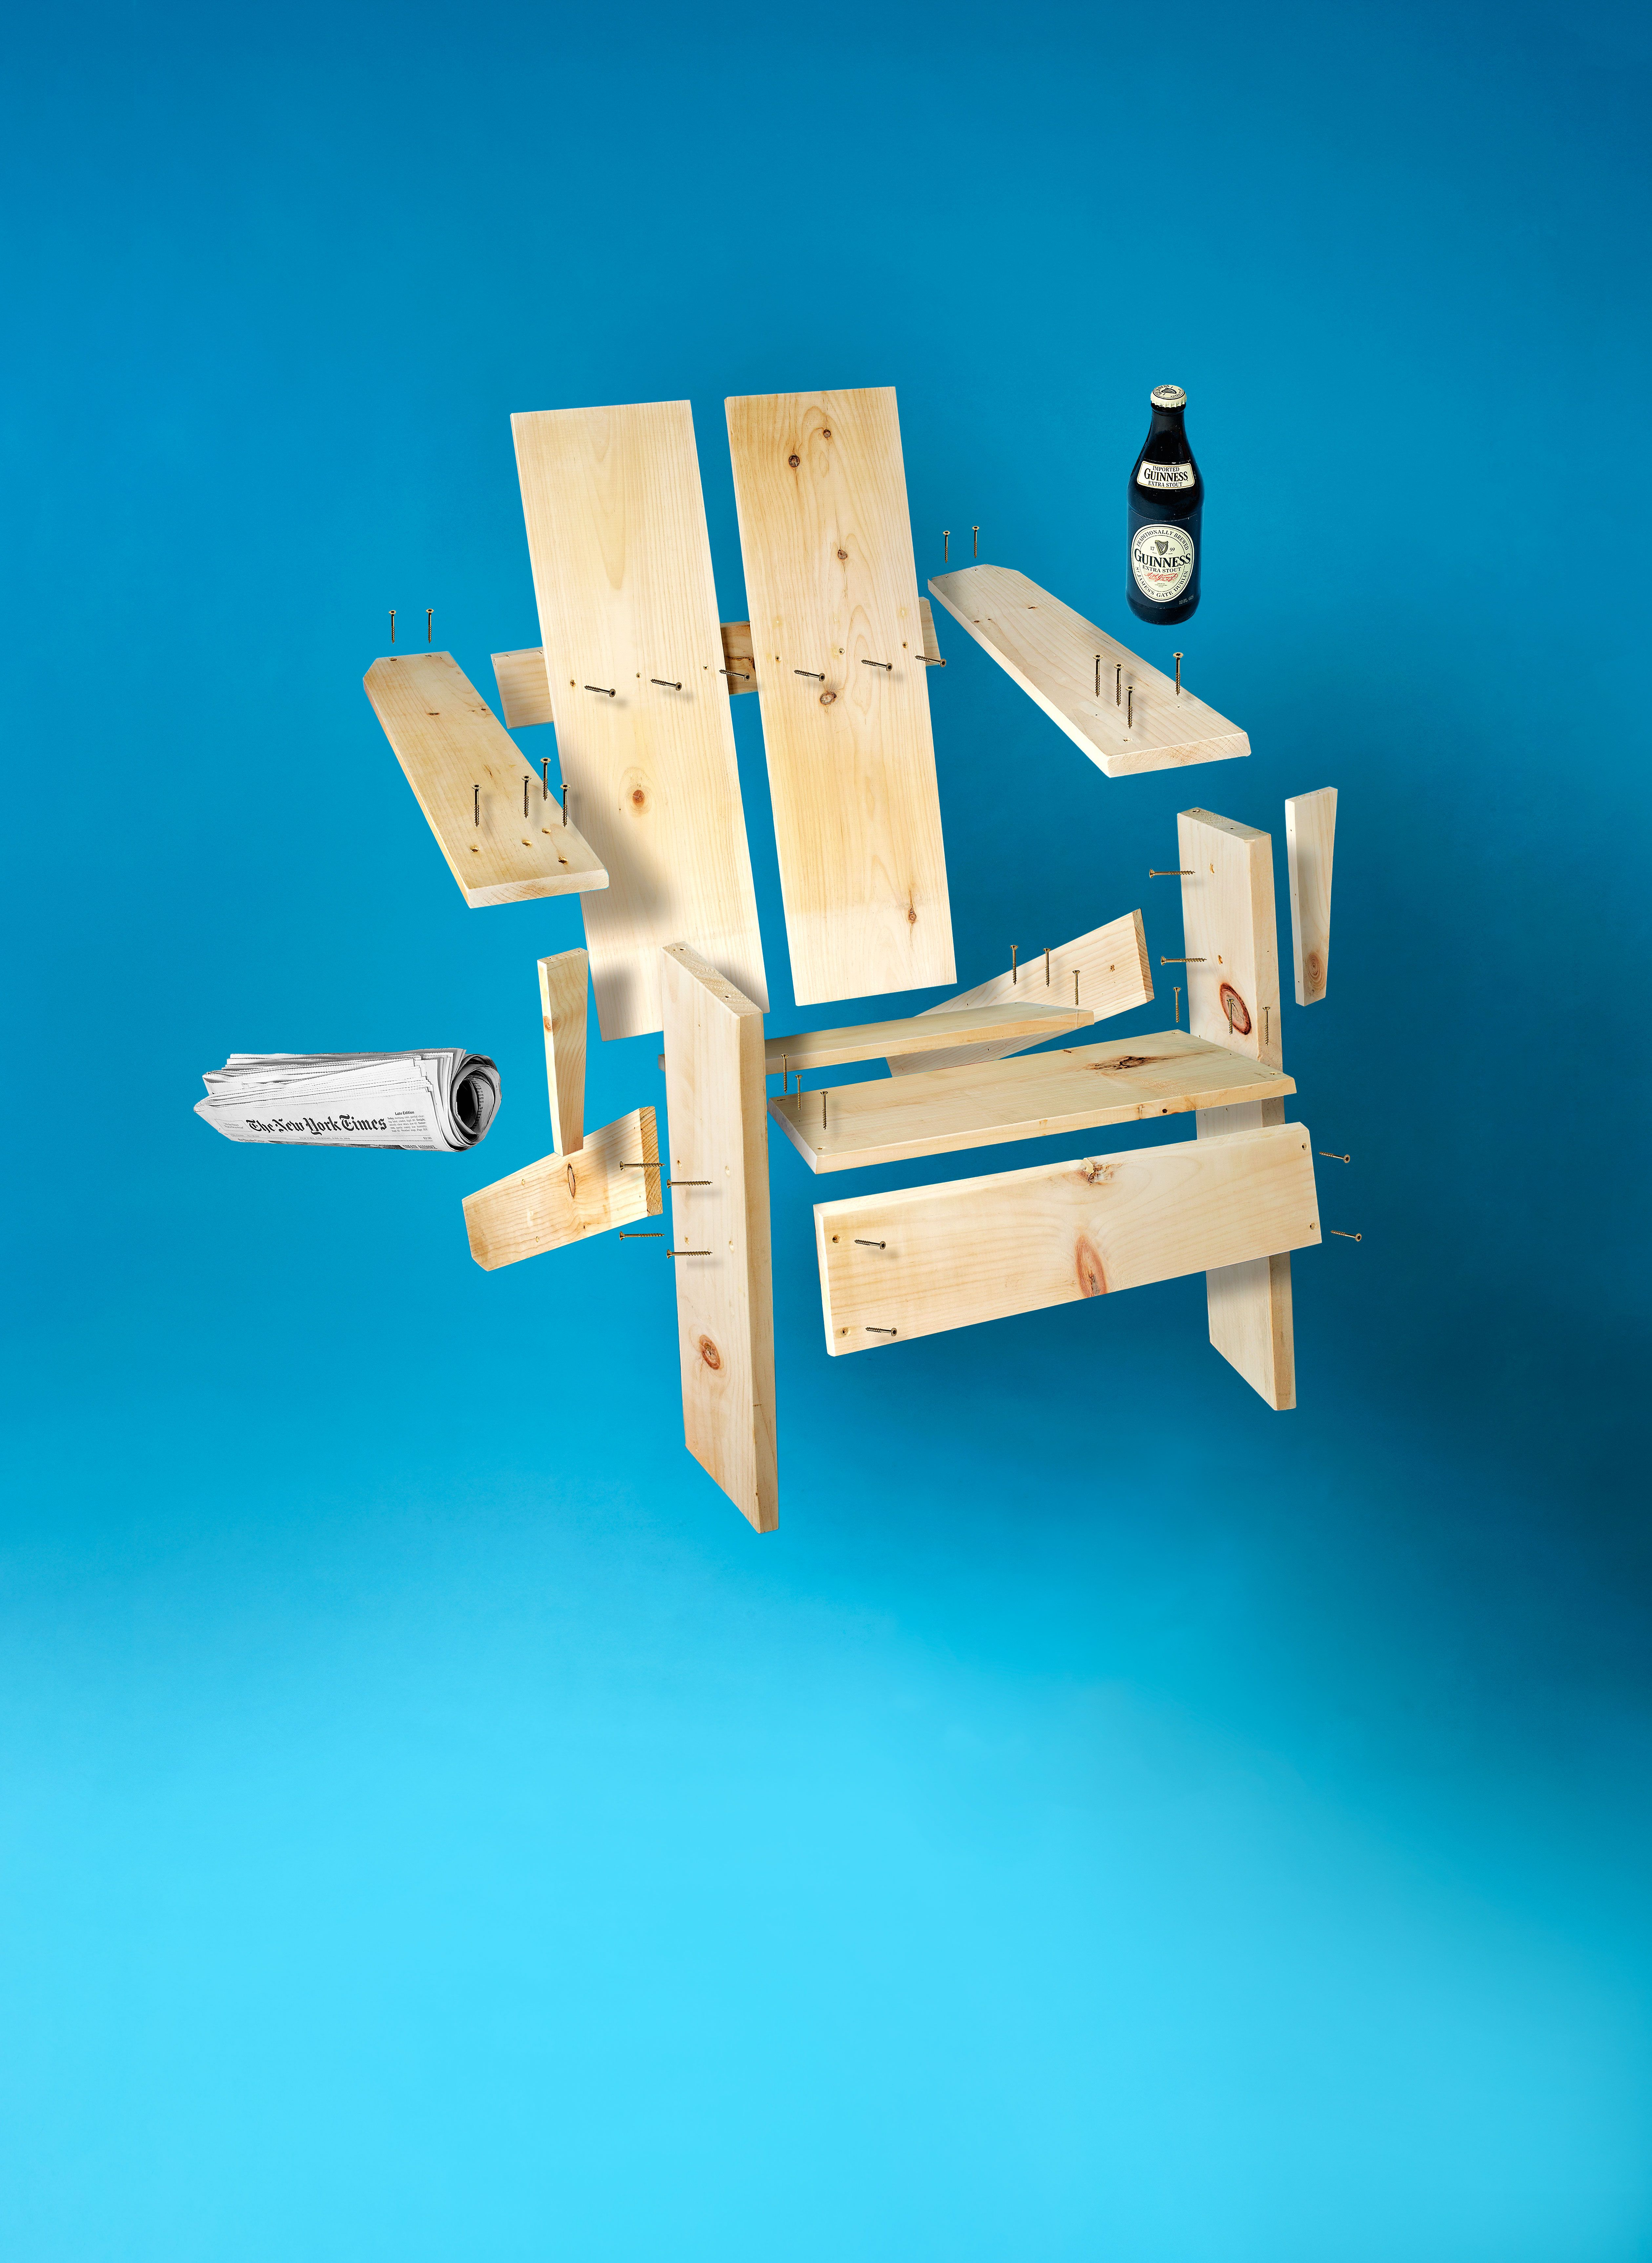 Tremendous Howtomakeanything How To Make A Two Board Backyard Lounger Machost Co Dining Chair Design Ideas Machostcouk